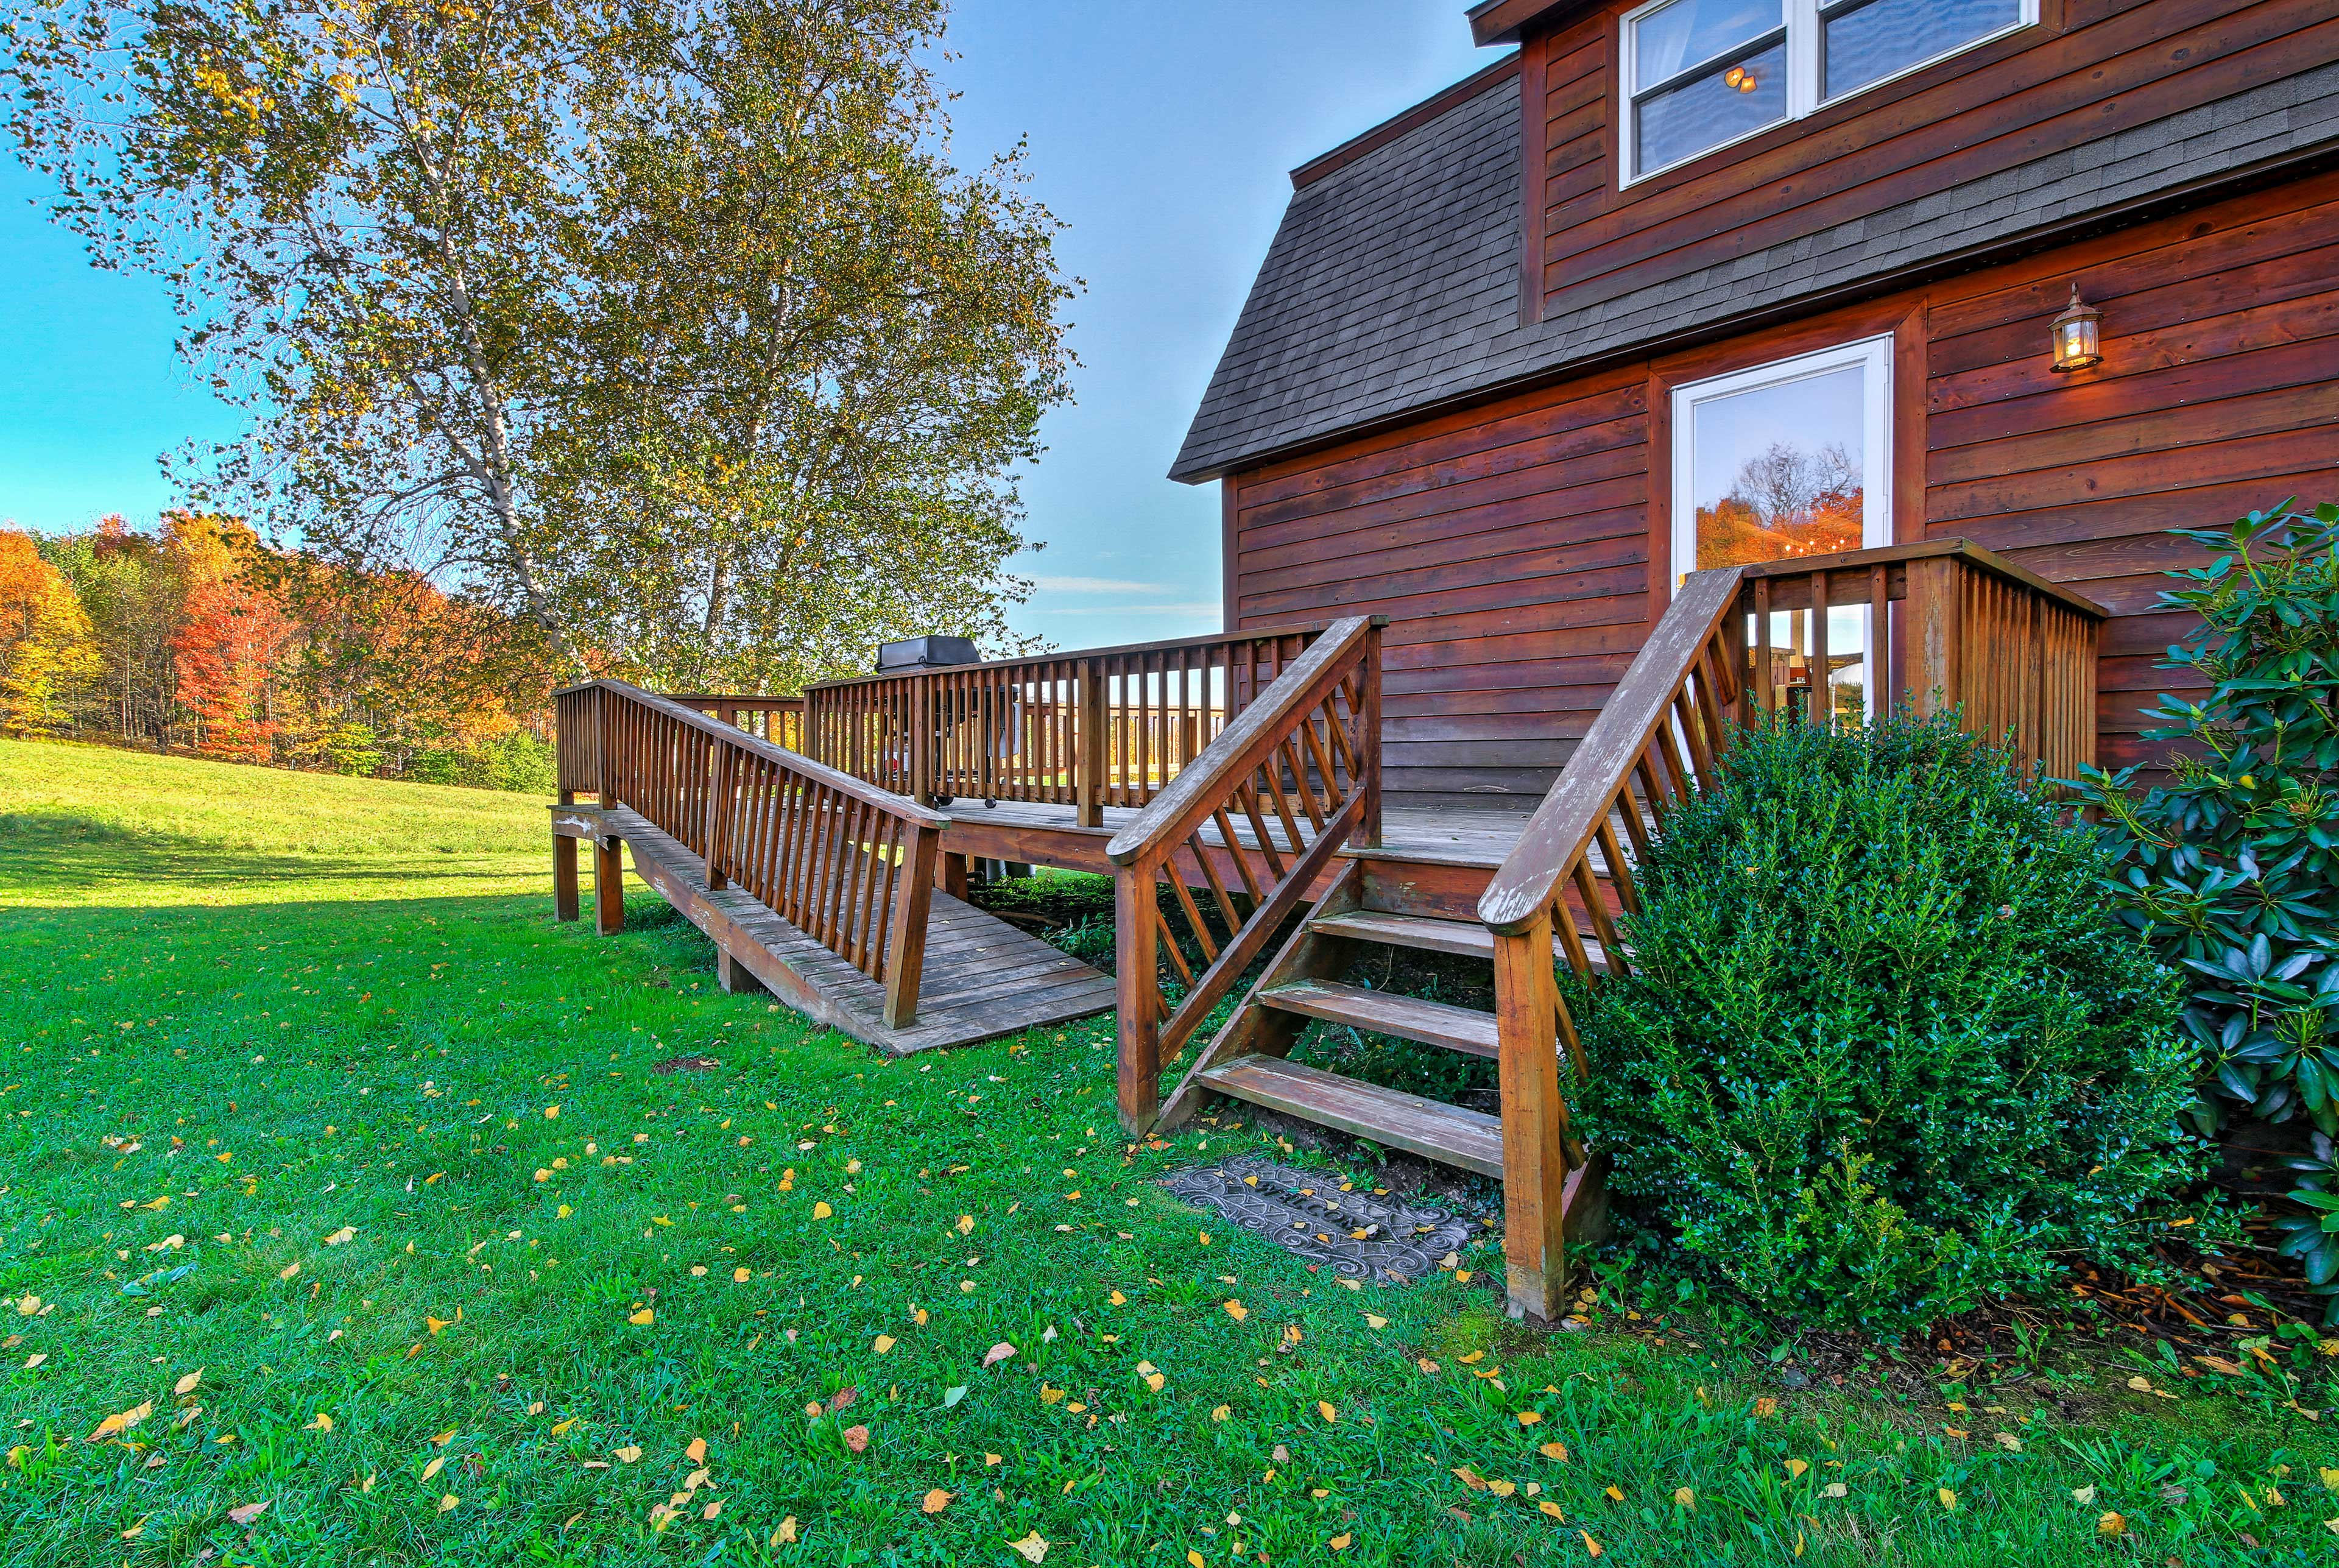 The cabin is easily accessible with a ramp onto the deck.